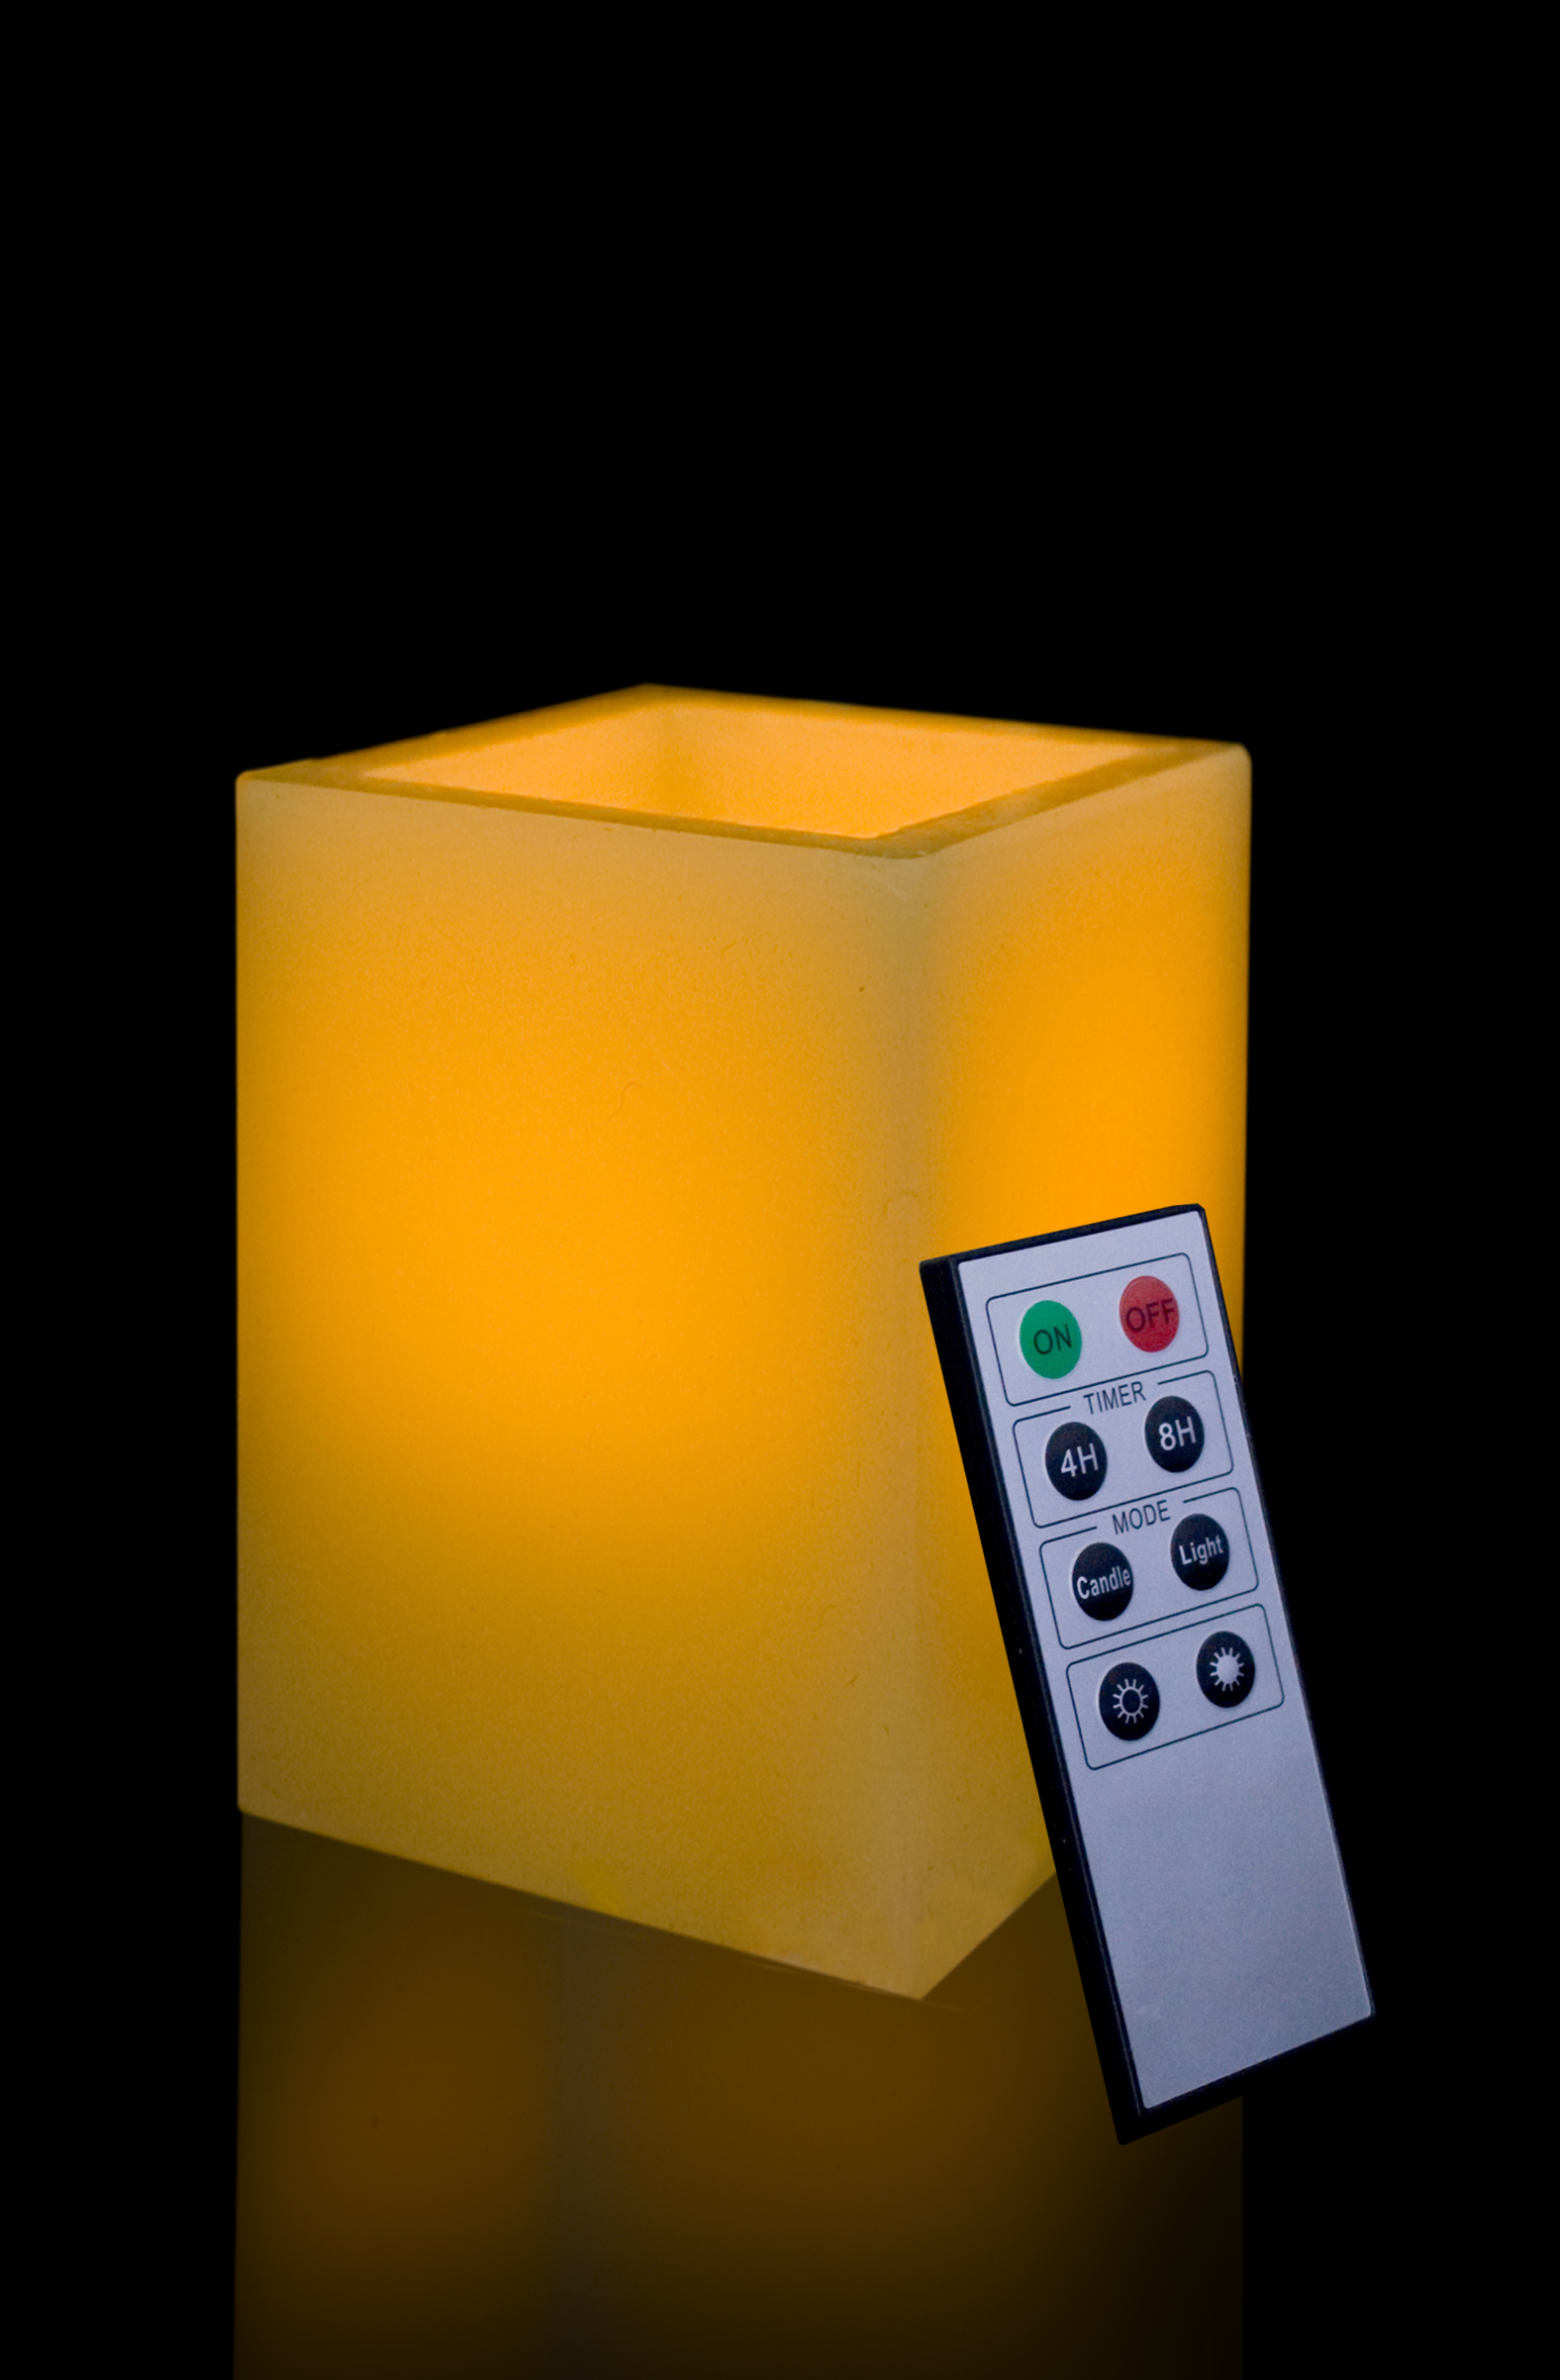 5 Inch Flameless Remote Control Square Pillar Candle - Yellow